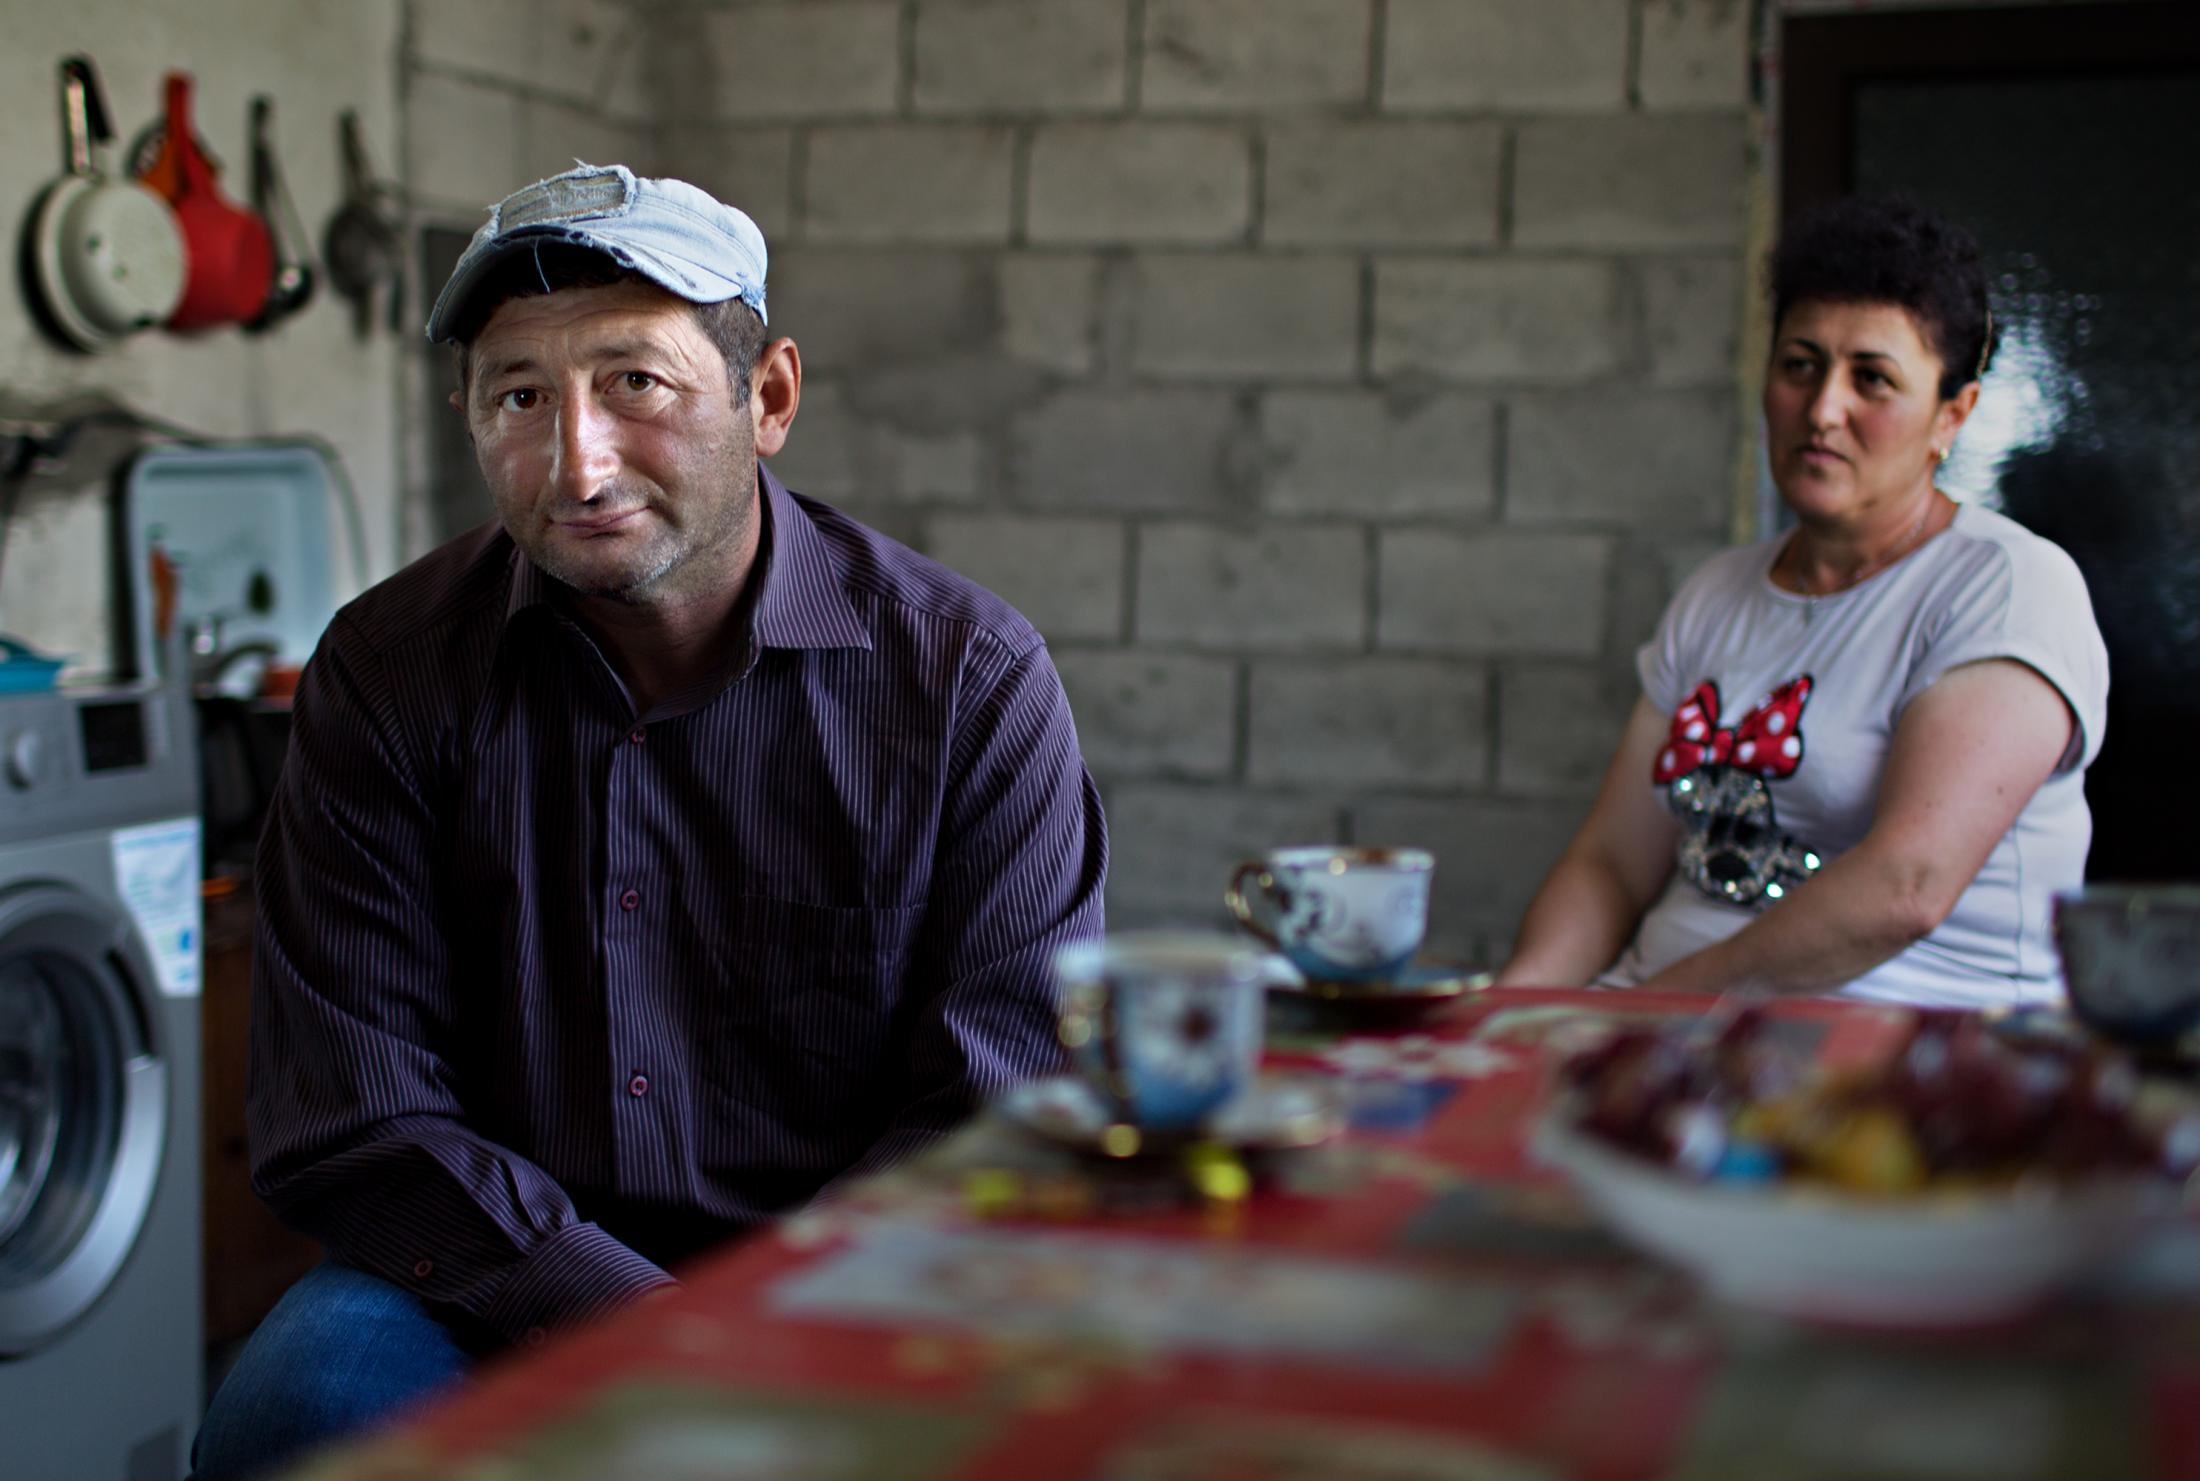 An Armenian husband and wife take a coffee break.